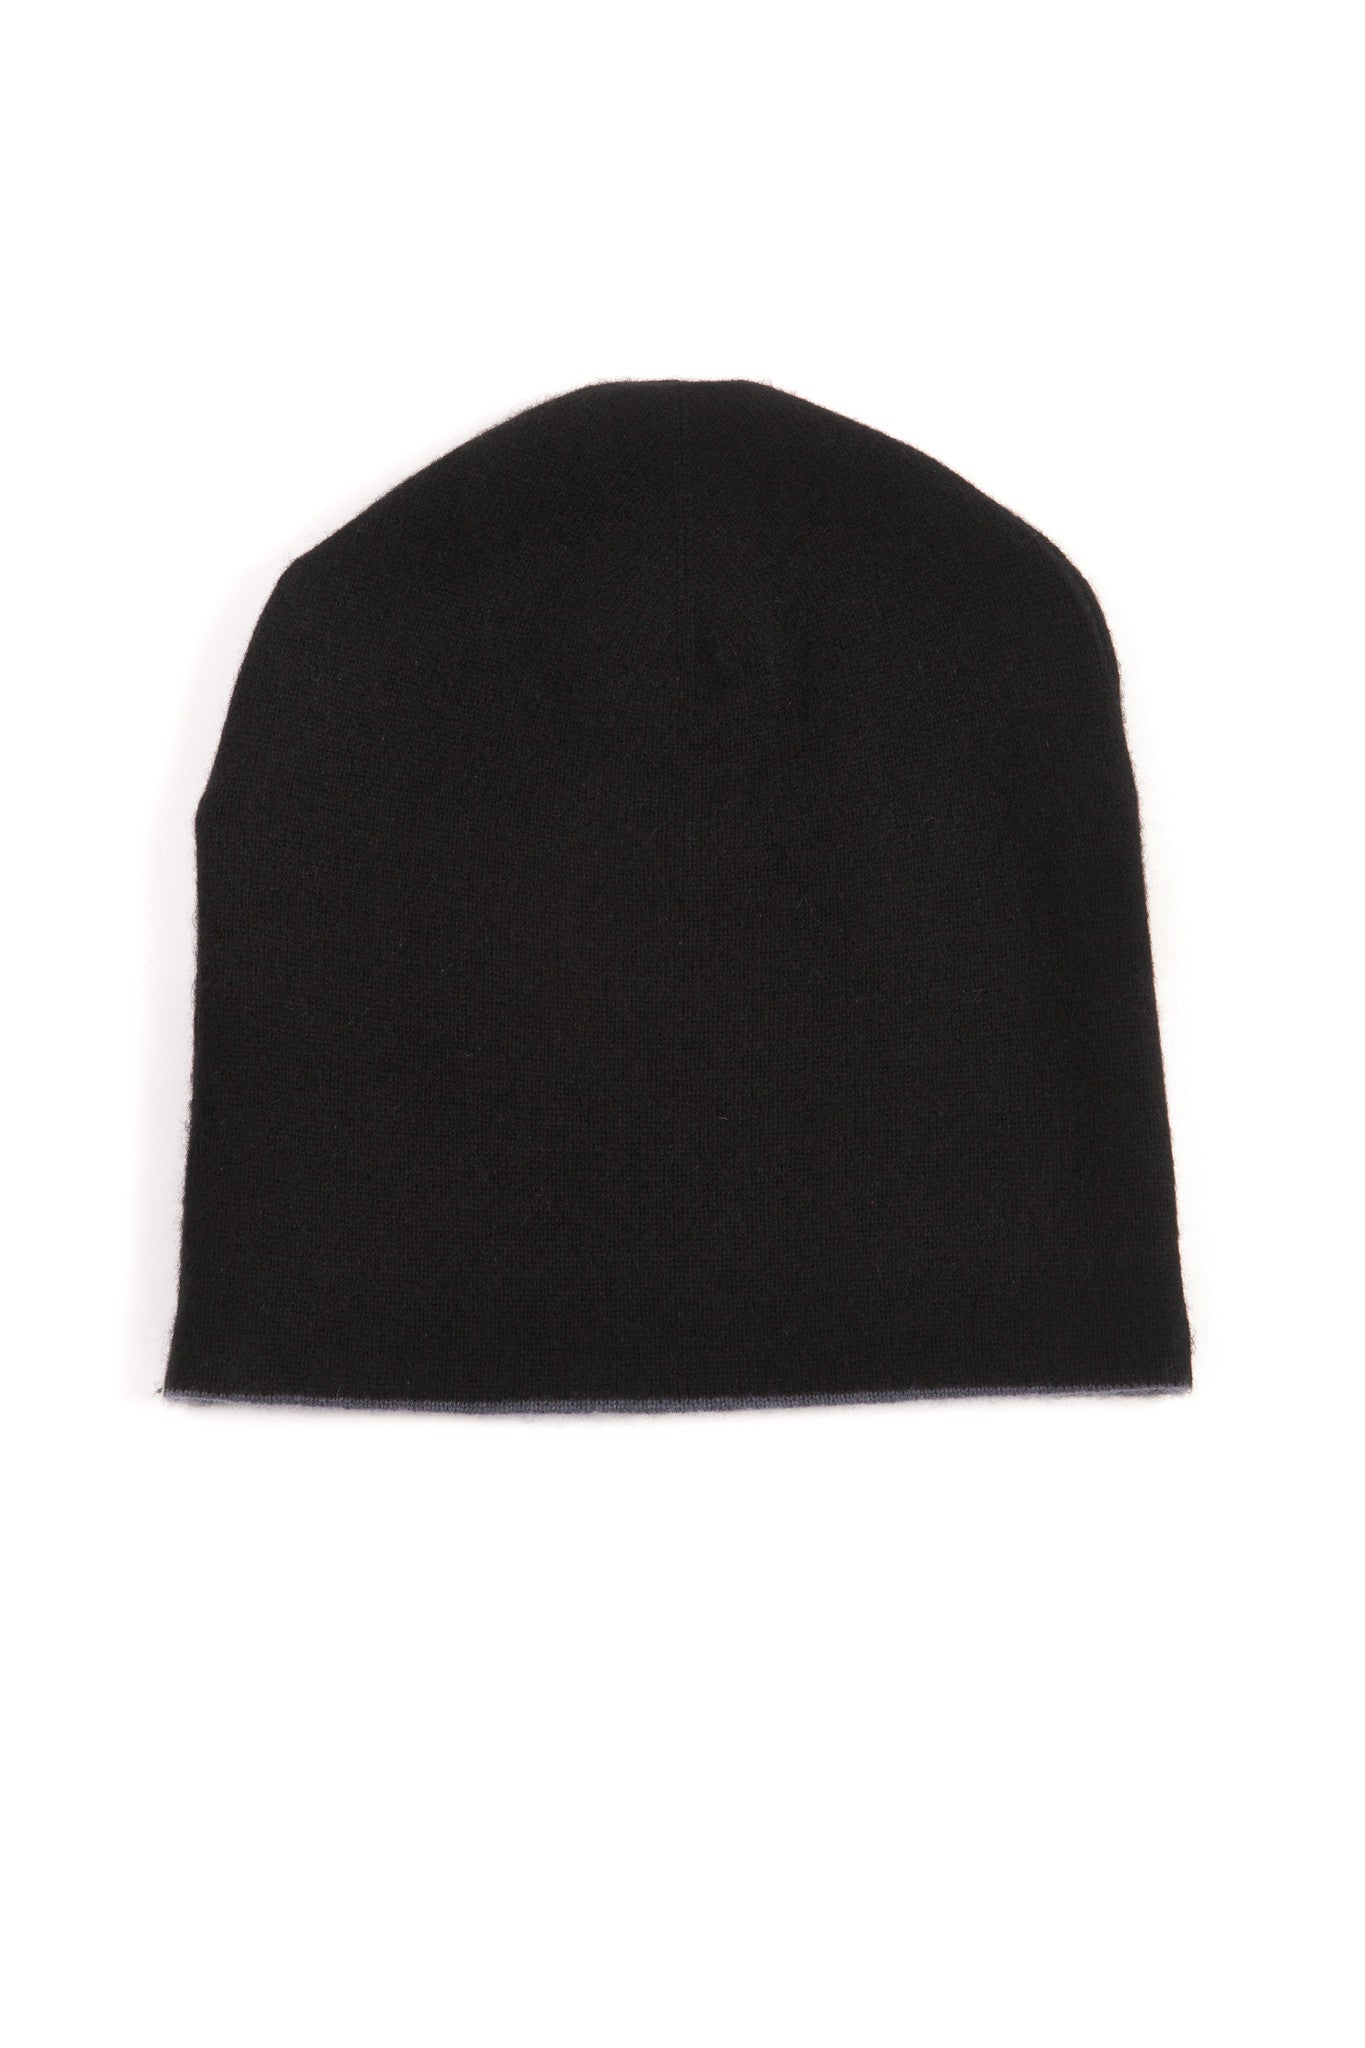 298ac954fd880 Black and Charcoal Grey 100% Cashmere Reversible Hat - Corala Cashmere ...